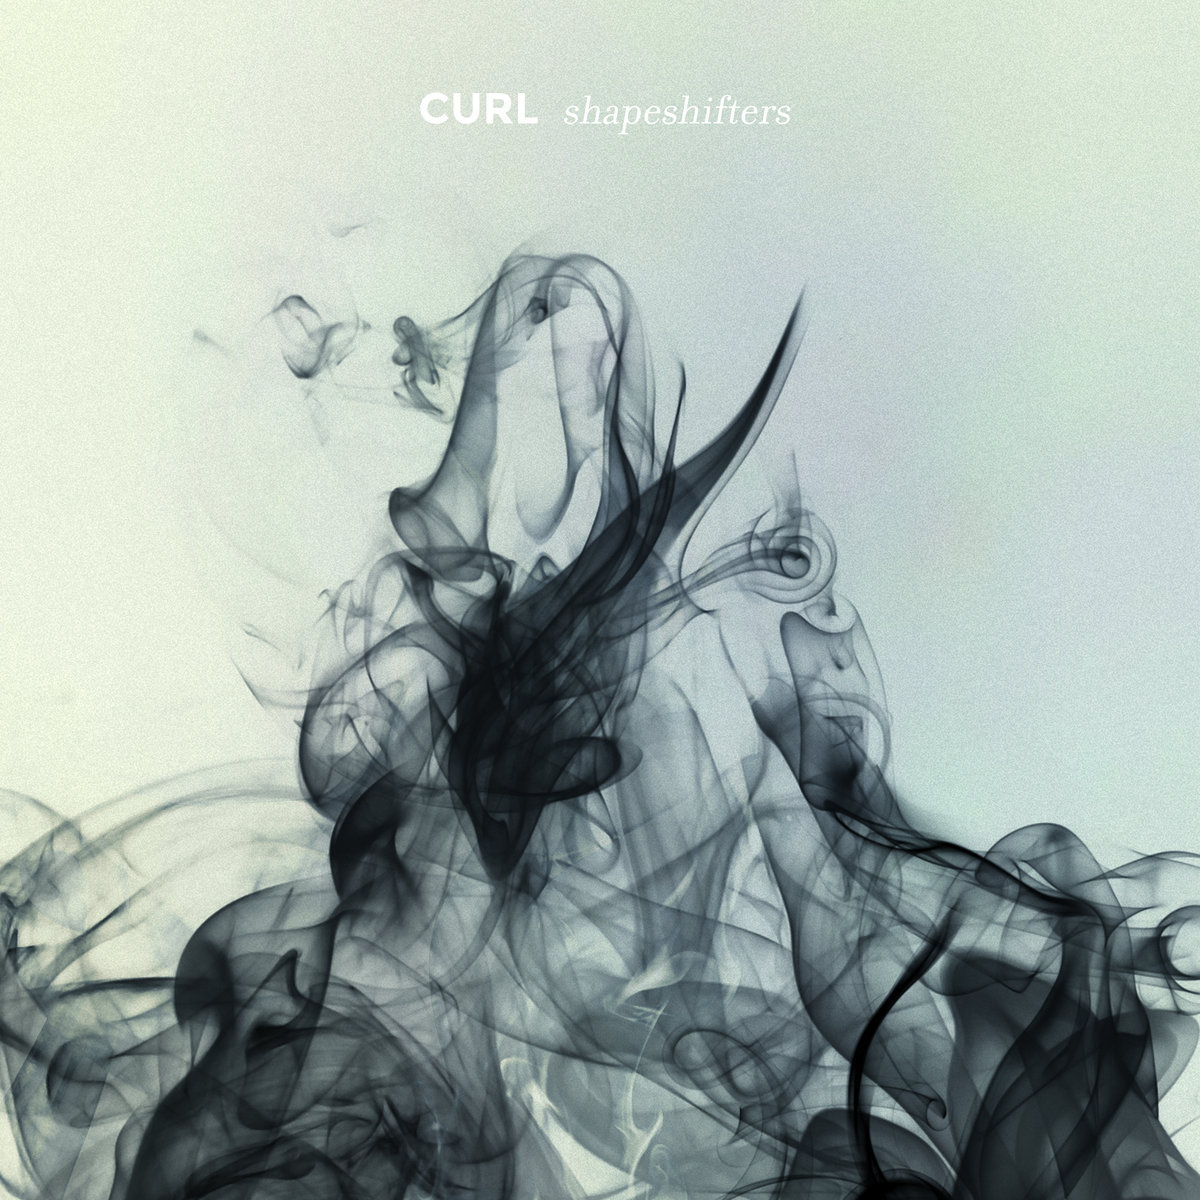 Curl - Shapeshifters